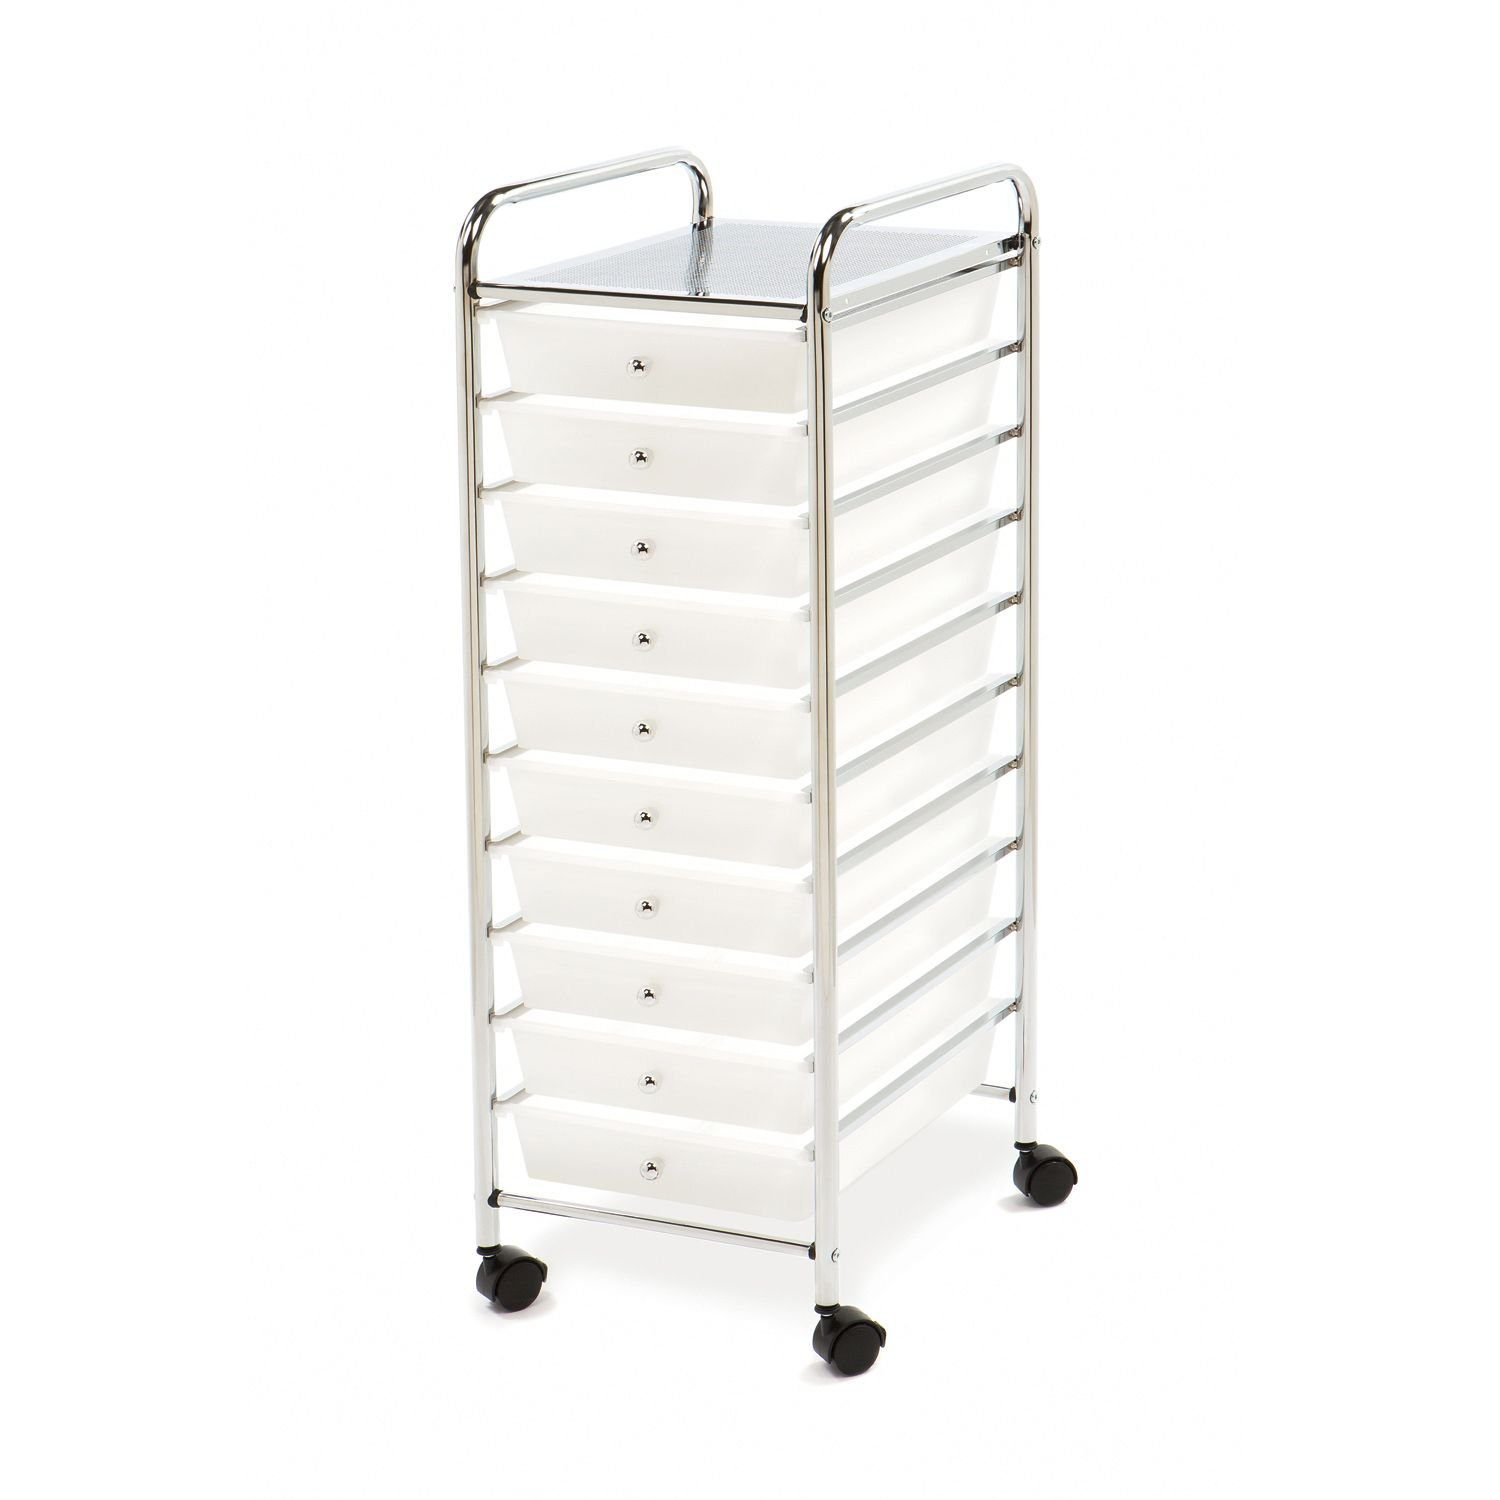 Seville Classics She16210 15.51-Inch By15.4-Inch by 38.2-Inch 10 Drawer Organizer